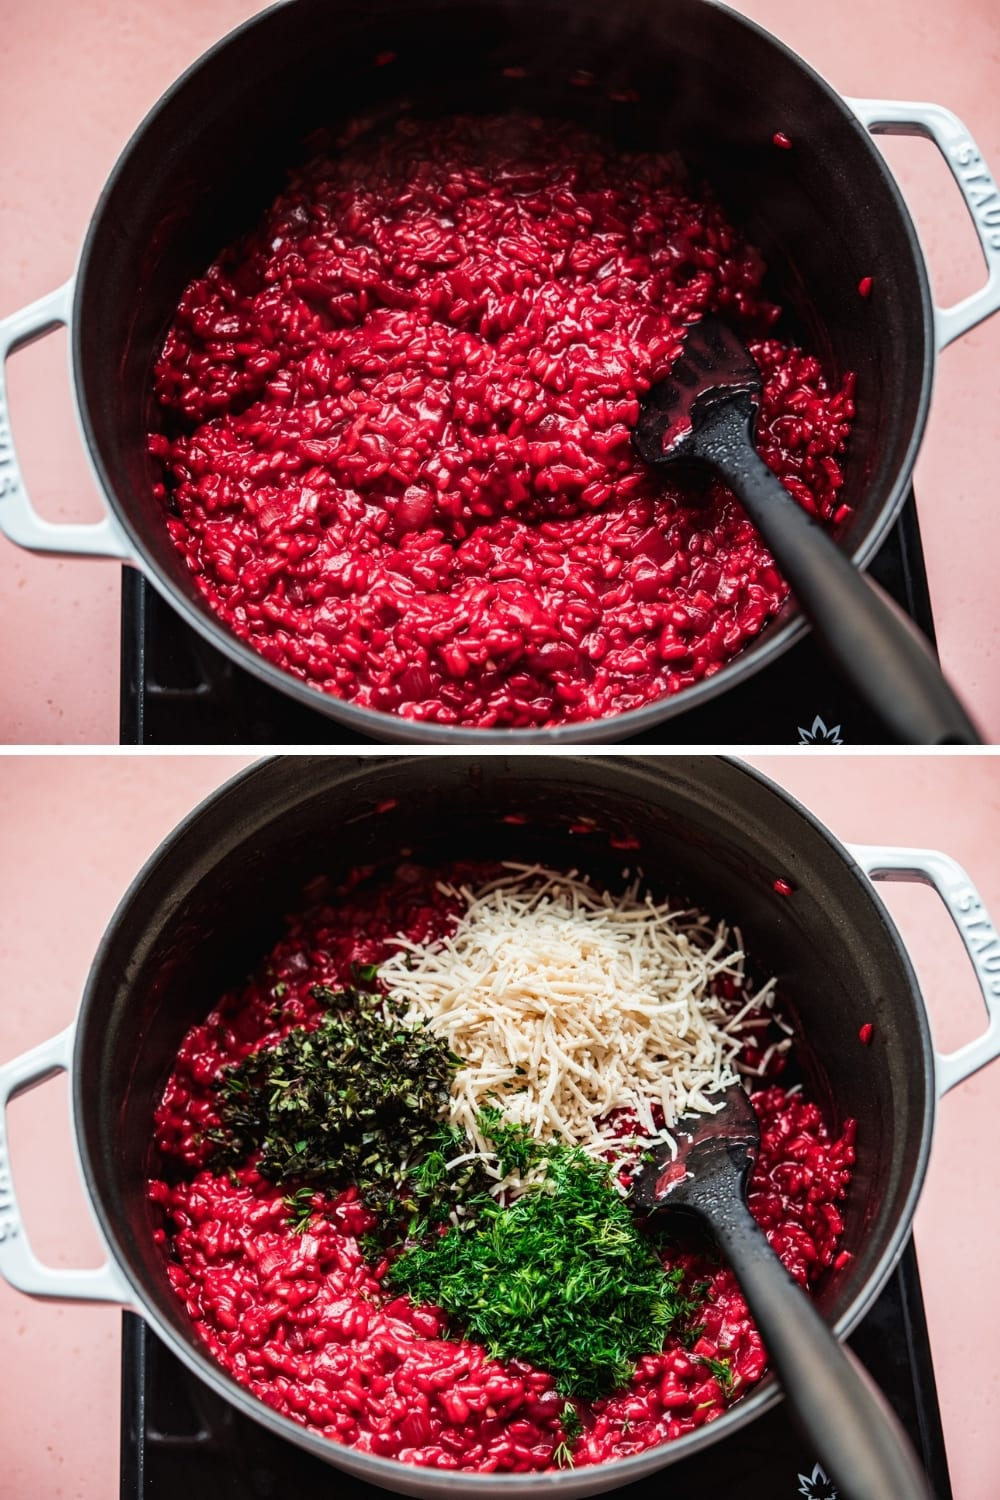 Beet risotto in a pan with vegan parmesan and fresh herbs.